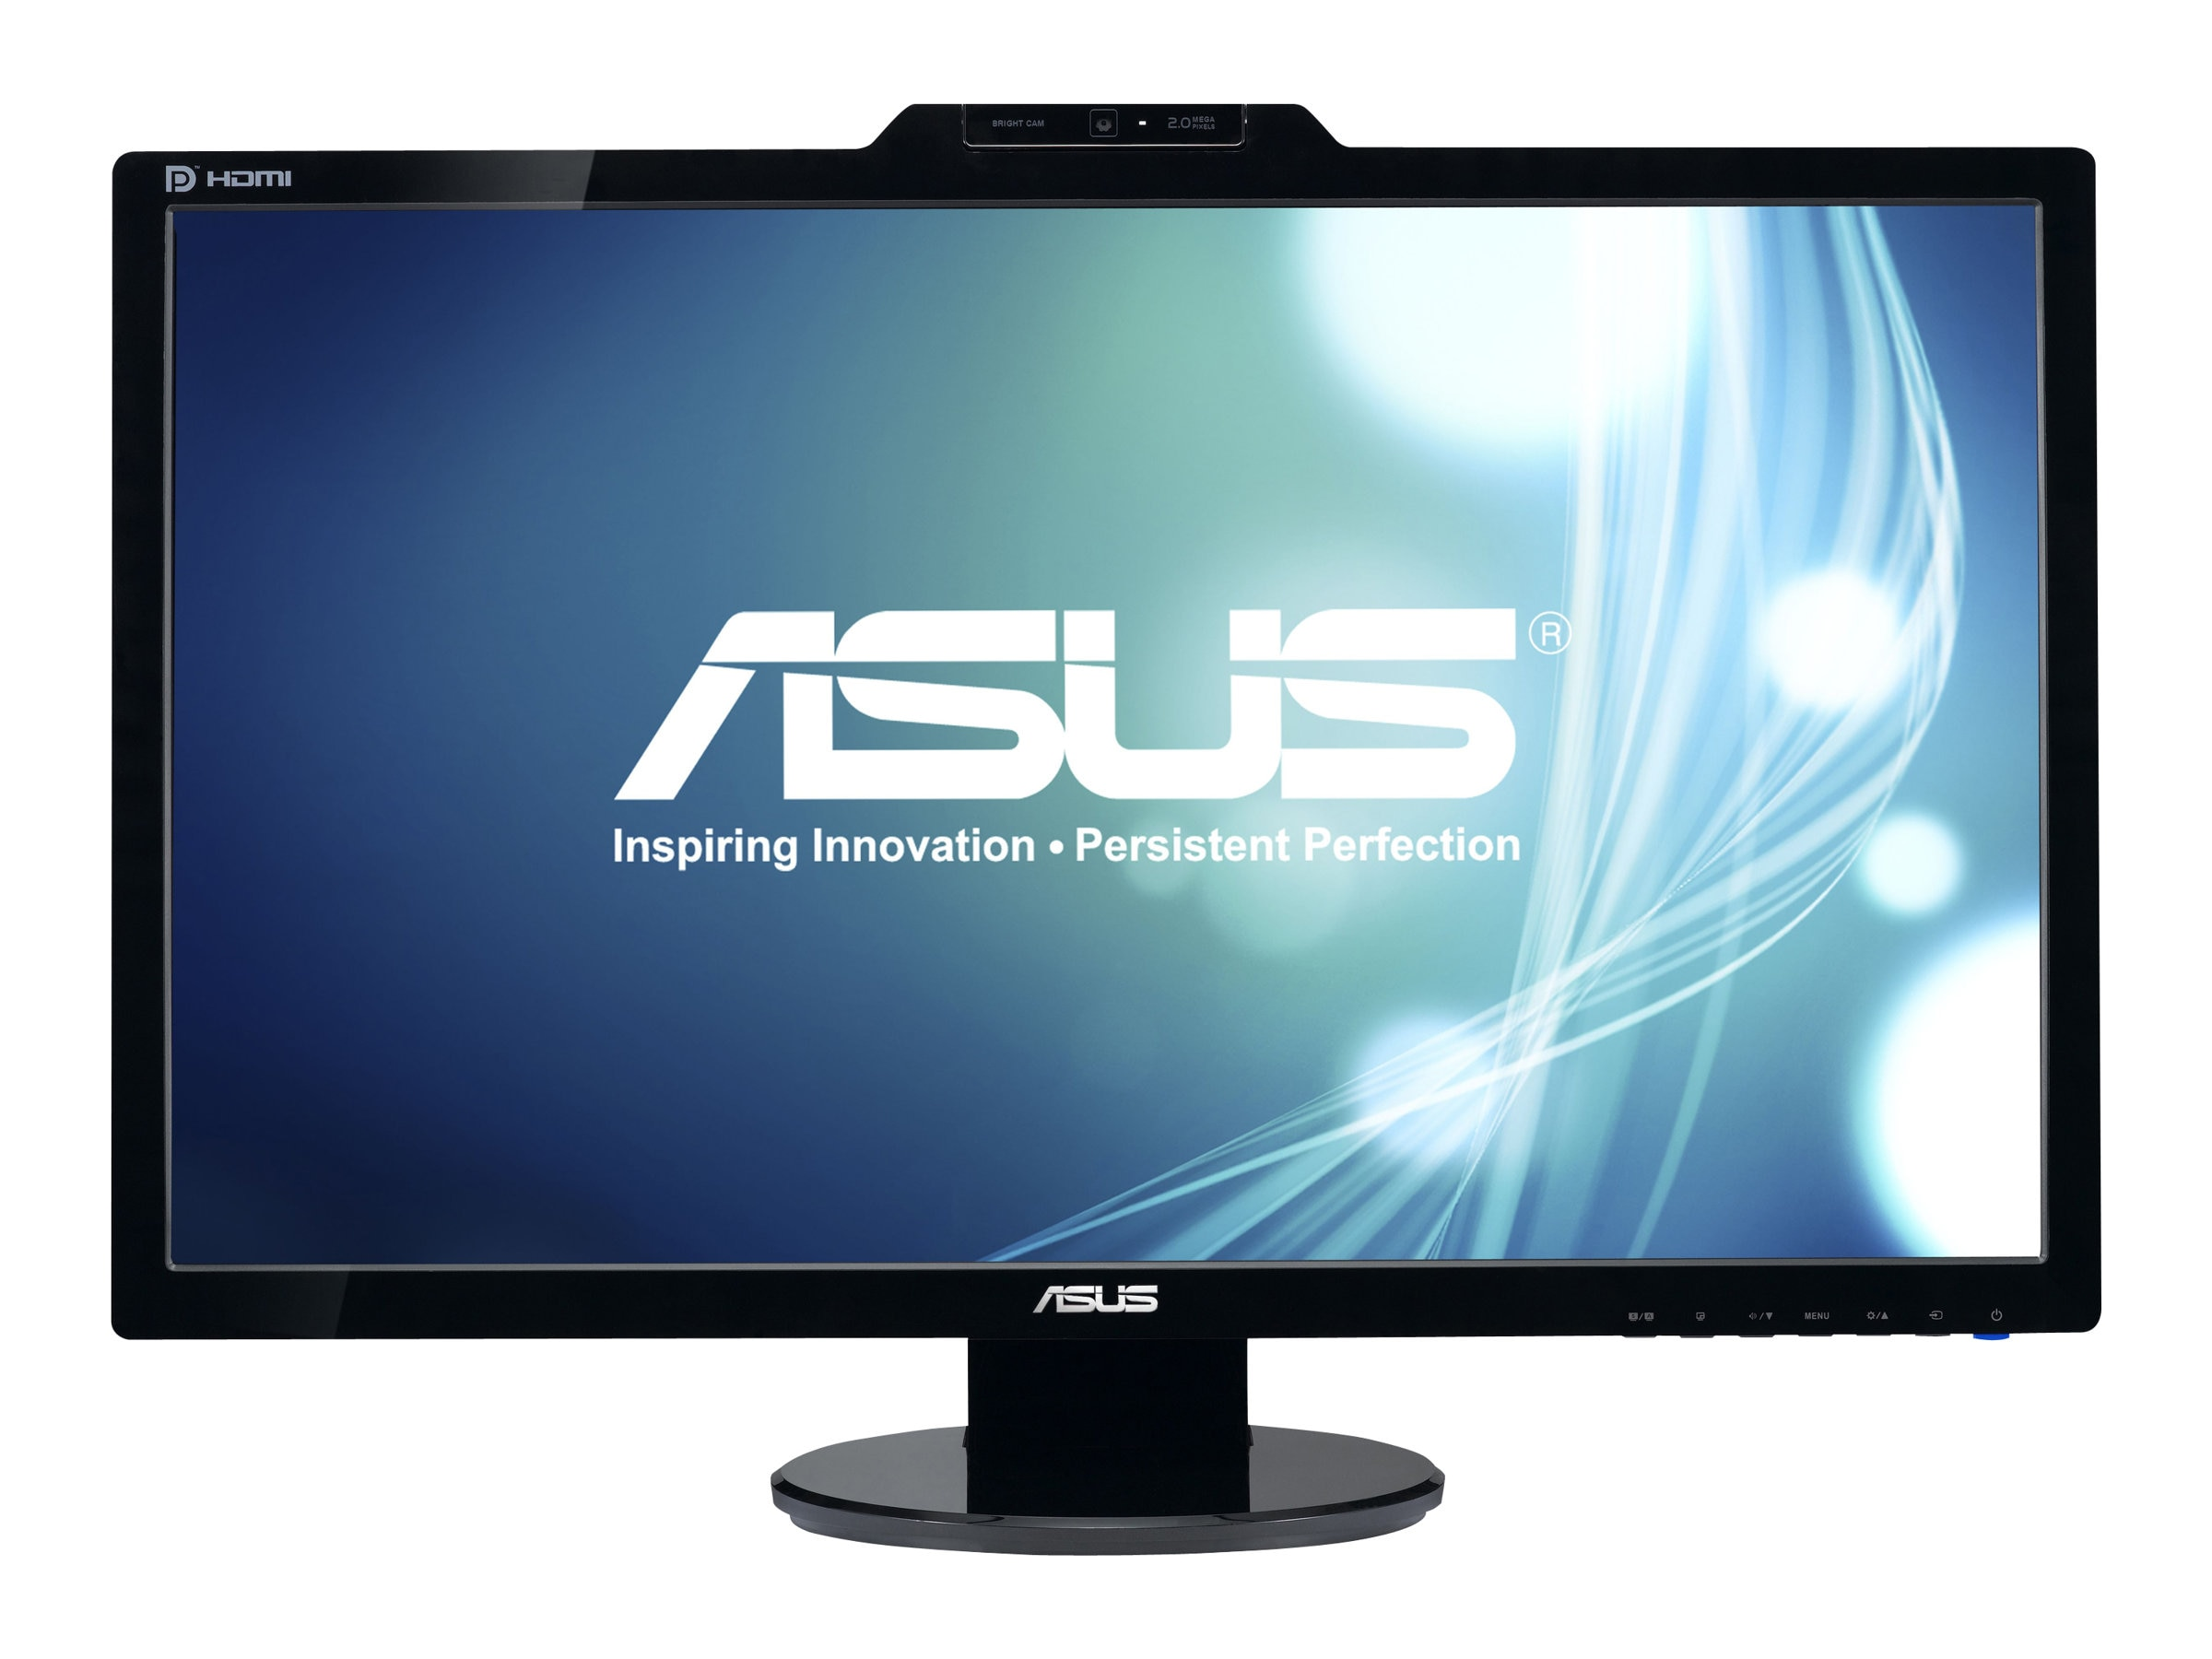 Asus 27 VK278Q Widescreen LED-LCD Full HD Monitor with Webcam, Black, VK278Q, 12019884, Monitors - LED-LCD